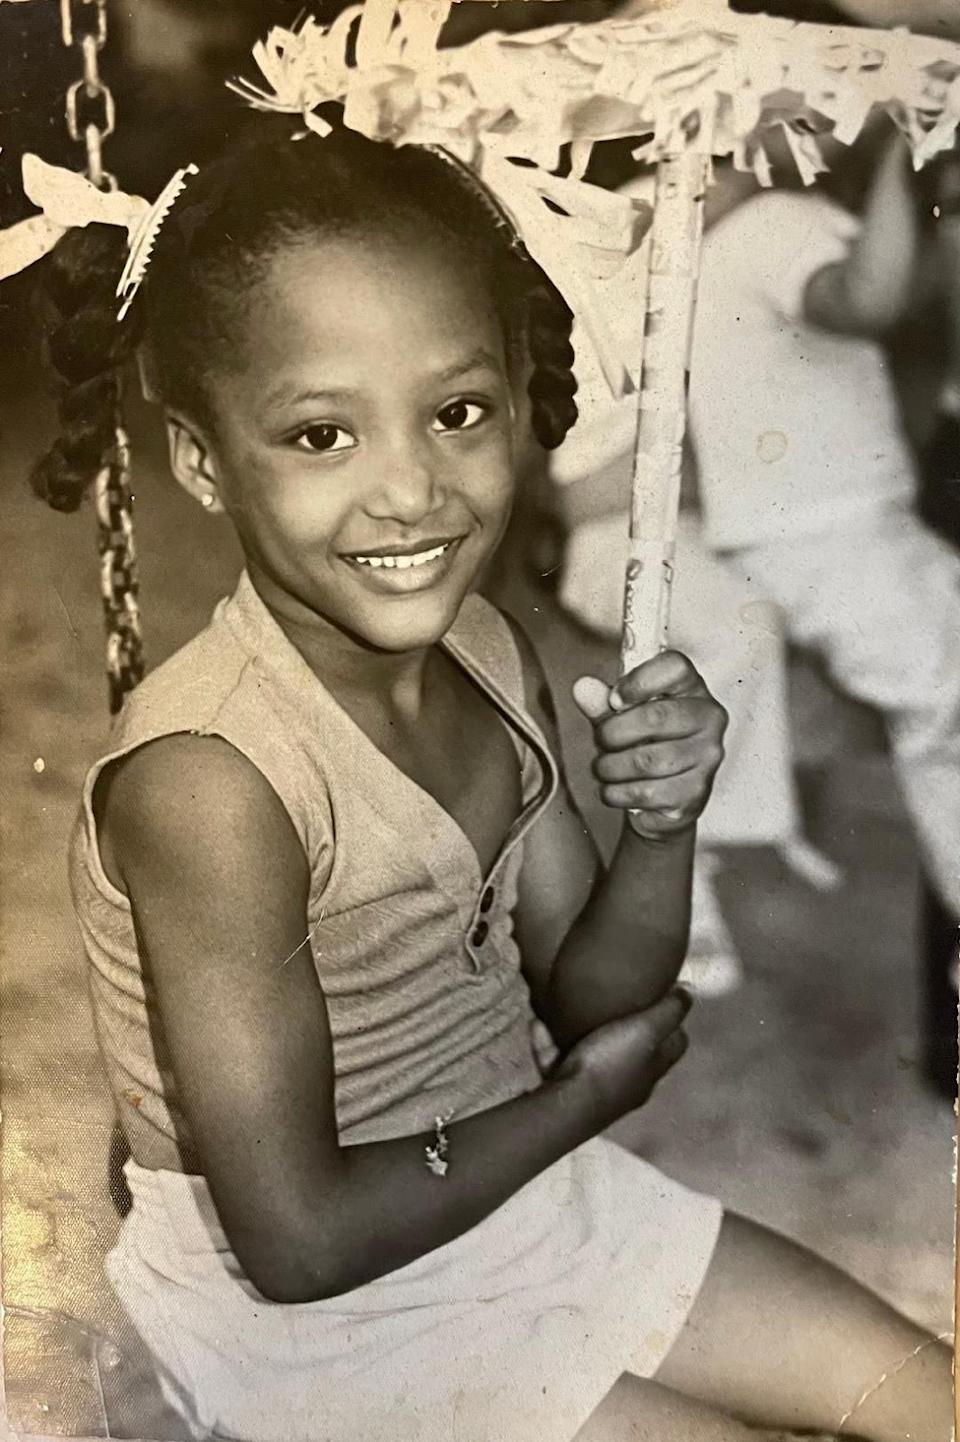 Annia Hatch as a child in Cuba (Courtesy of the athlete)